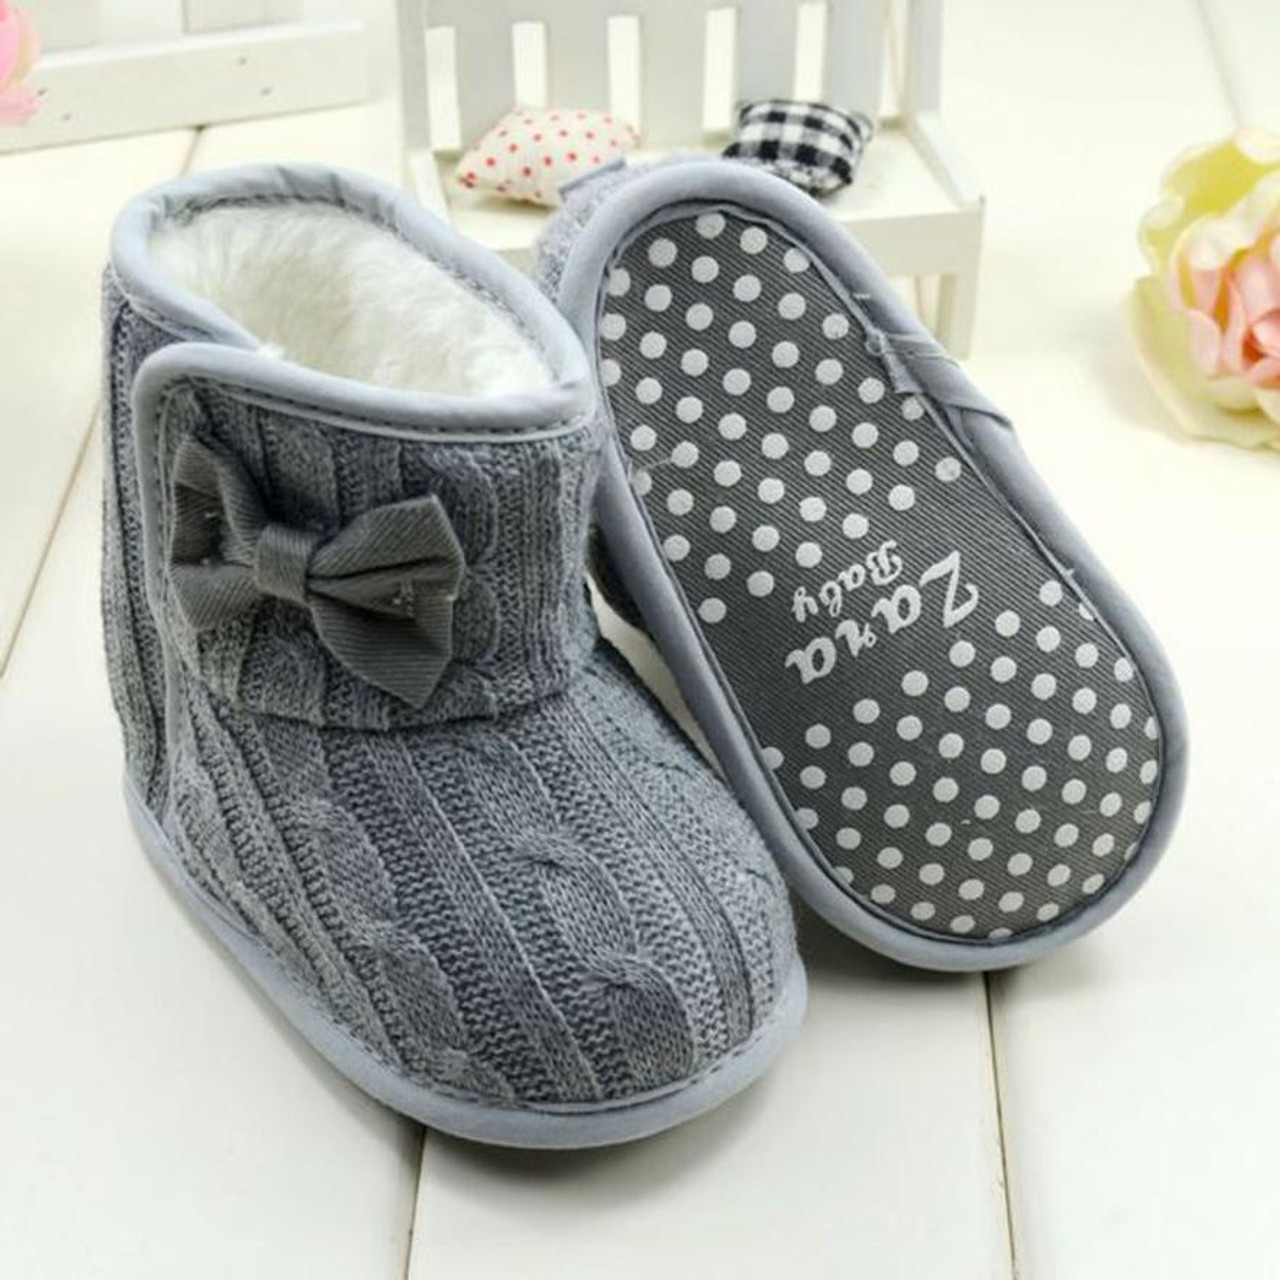 d80a3c082ccc5 ... MUQGEW baby girl shoes boots for baby girl winter Toddler Boots  Sneakers Kids Shoes Niosung Baby ...